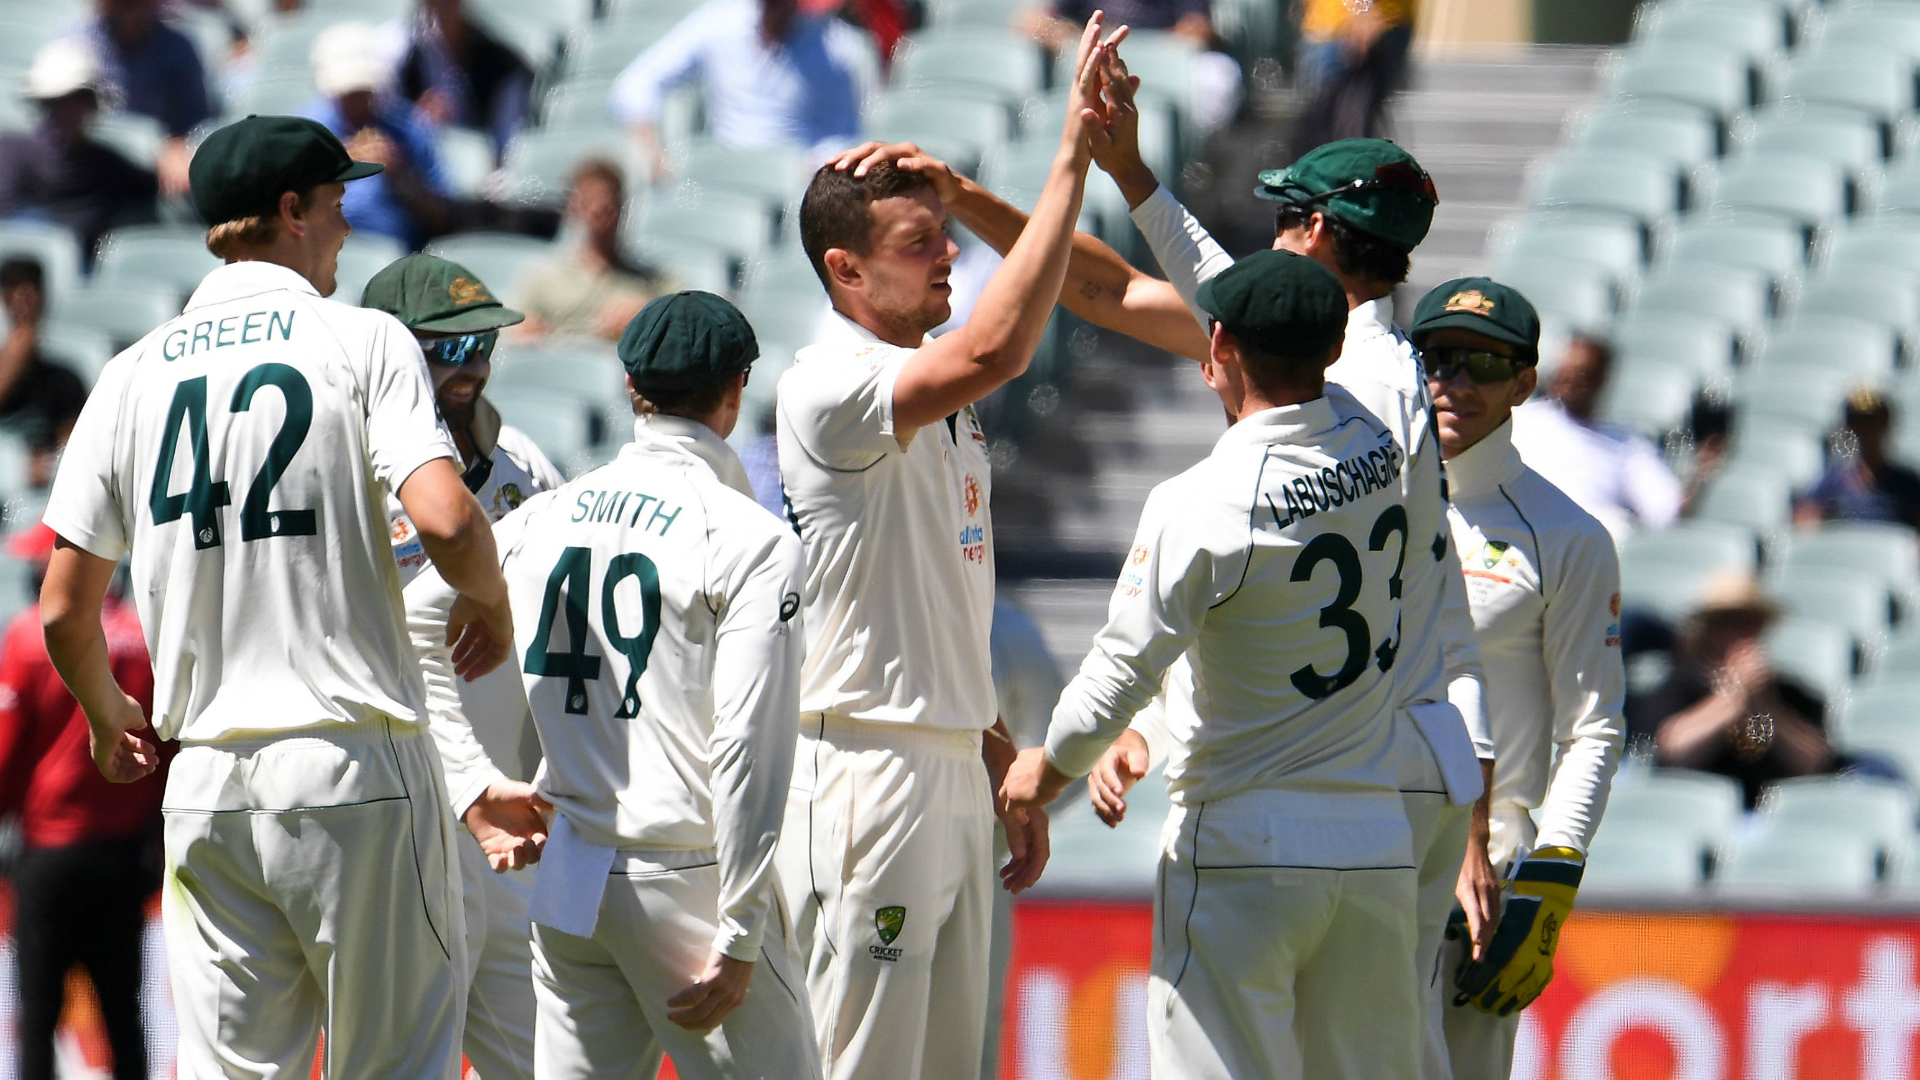 Australia humiliate India in crushing Test victory after visitors set new record low